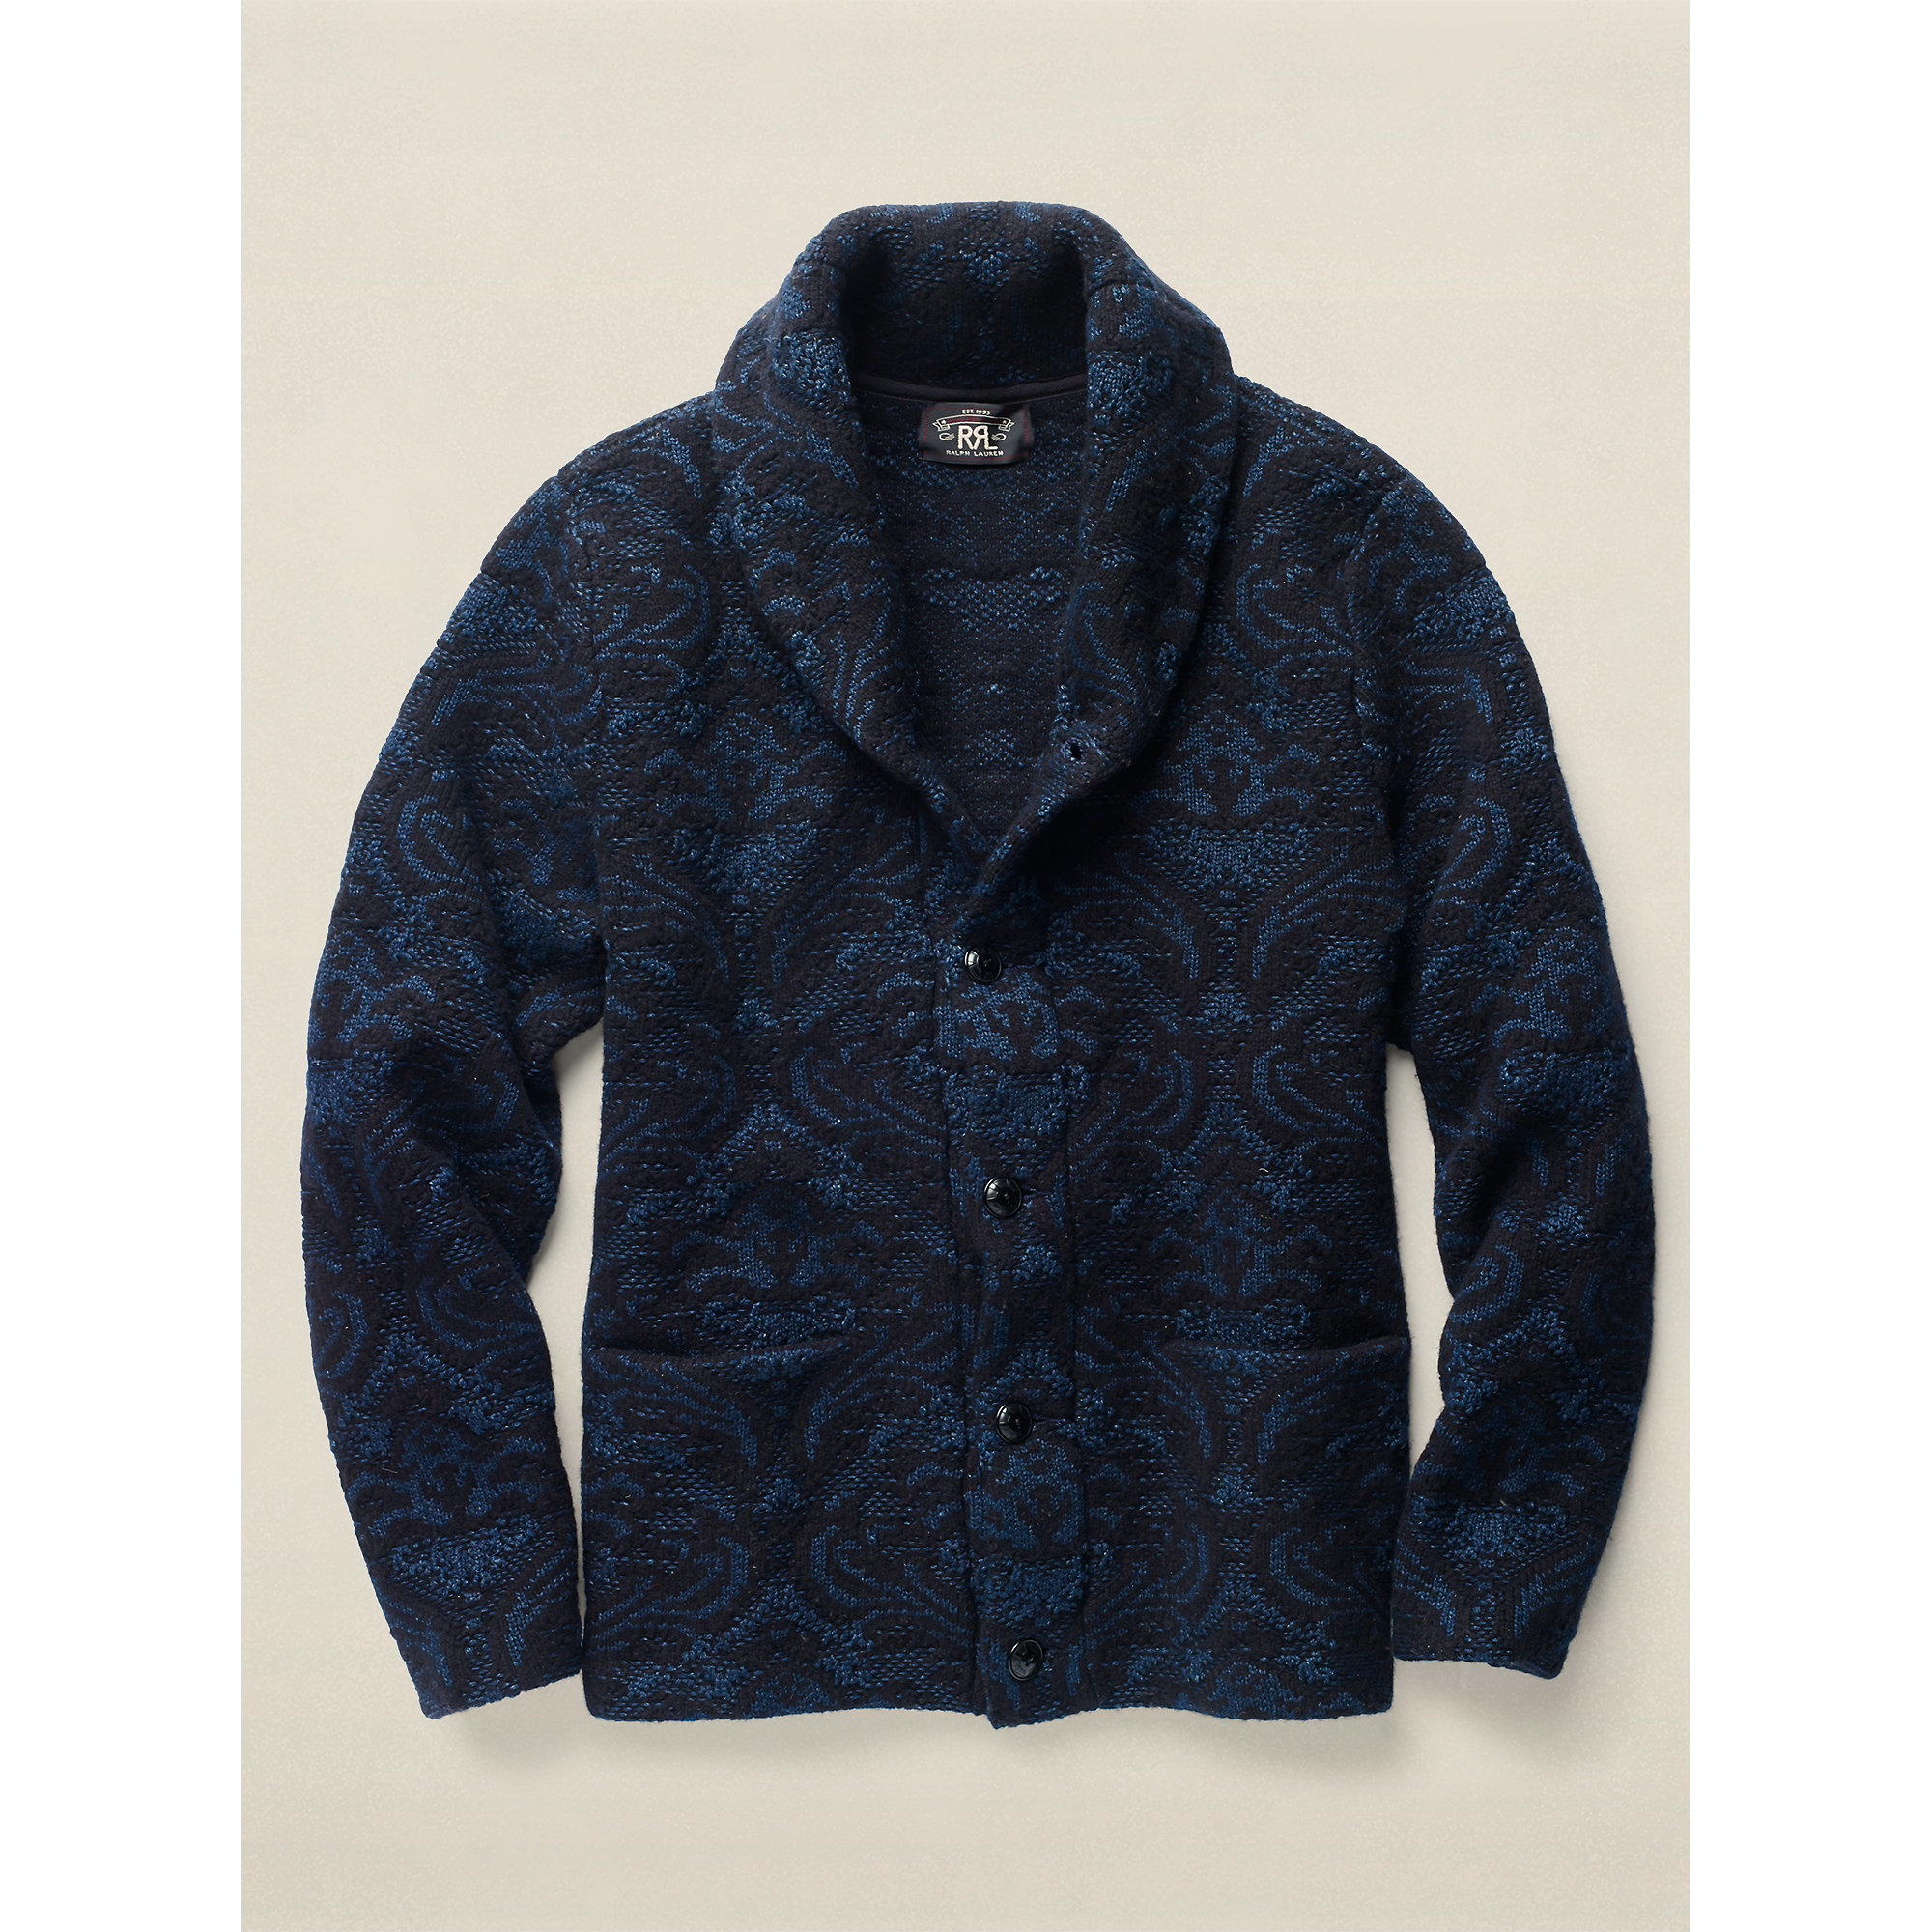 Rrl Jacquard Cotton-wool Cardigan in Blue for Men | Lyst